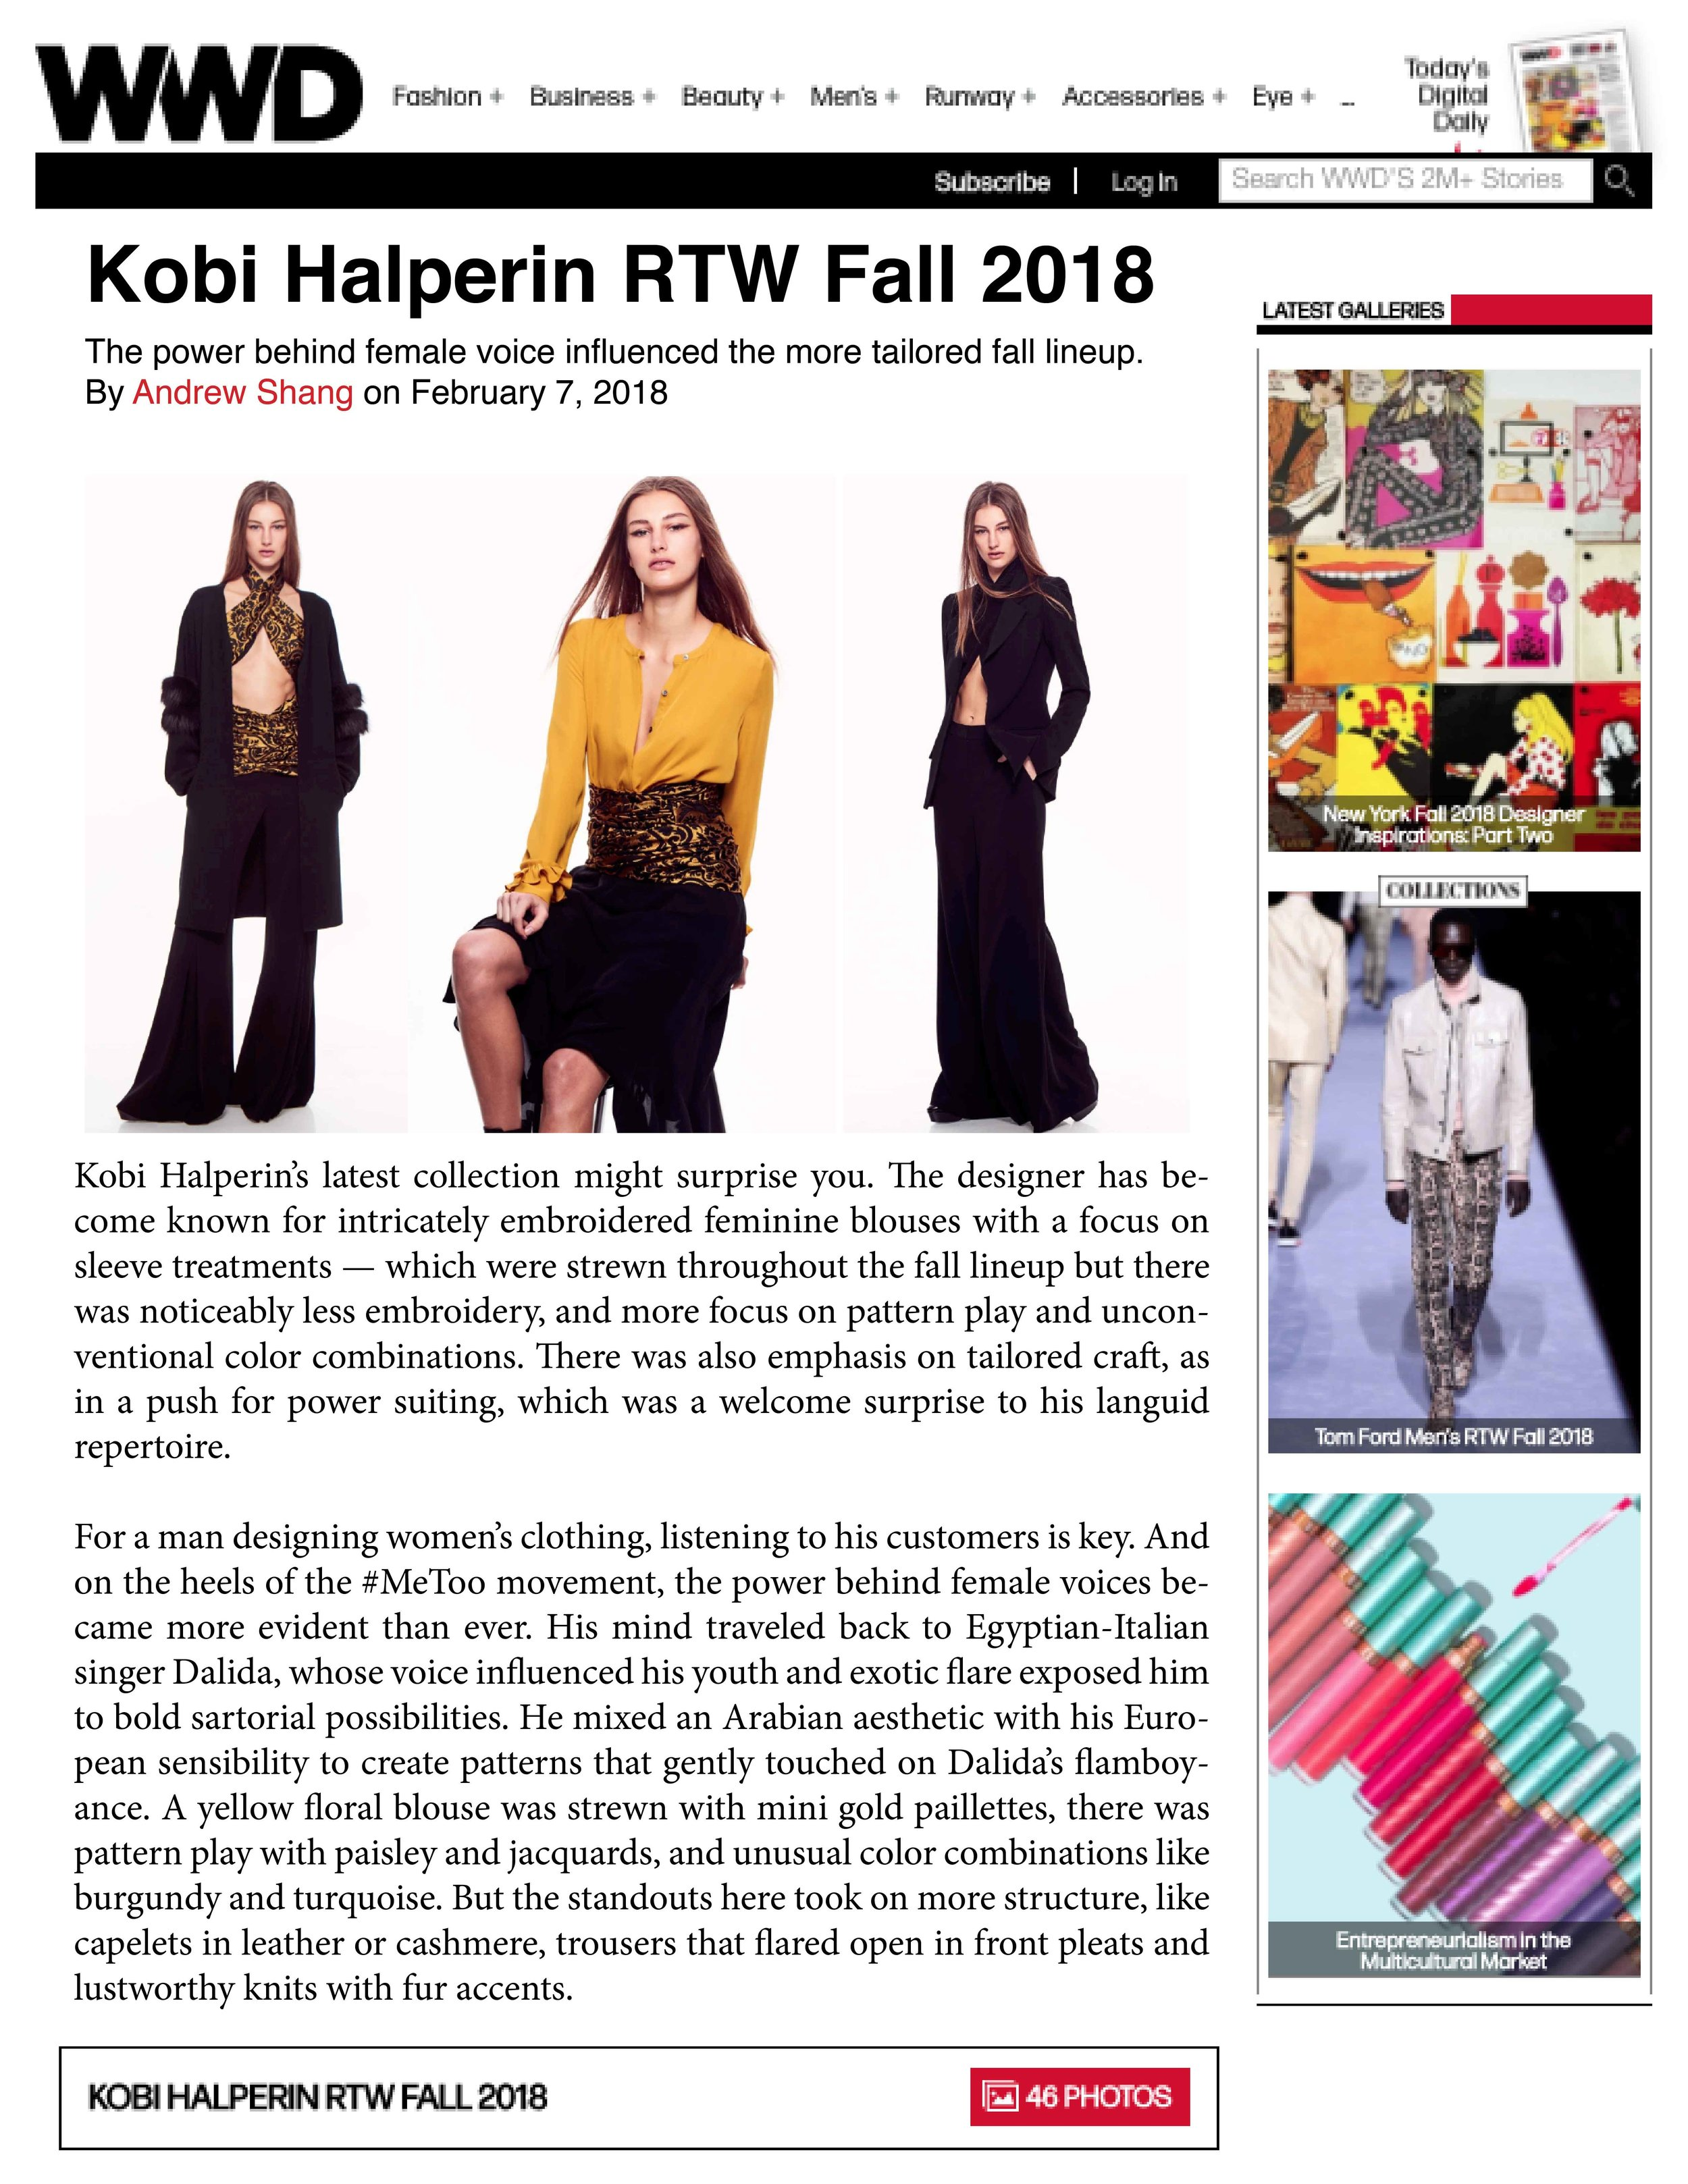 WWD Review Fall 2018_LowRes.jpg